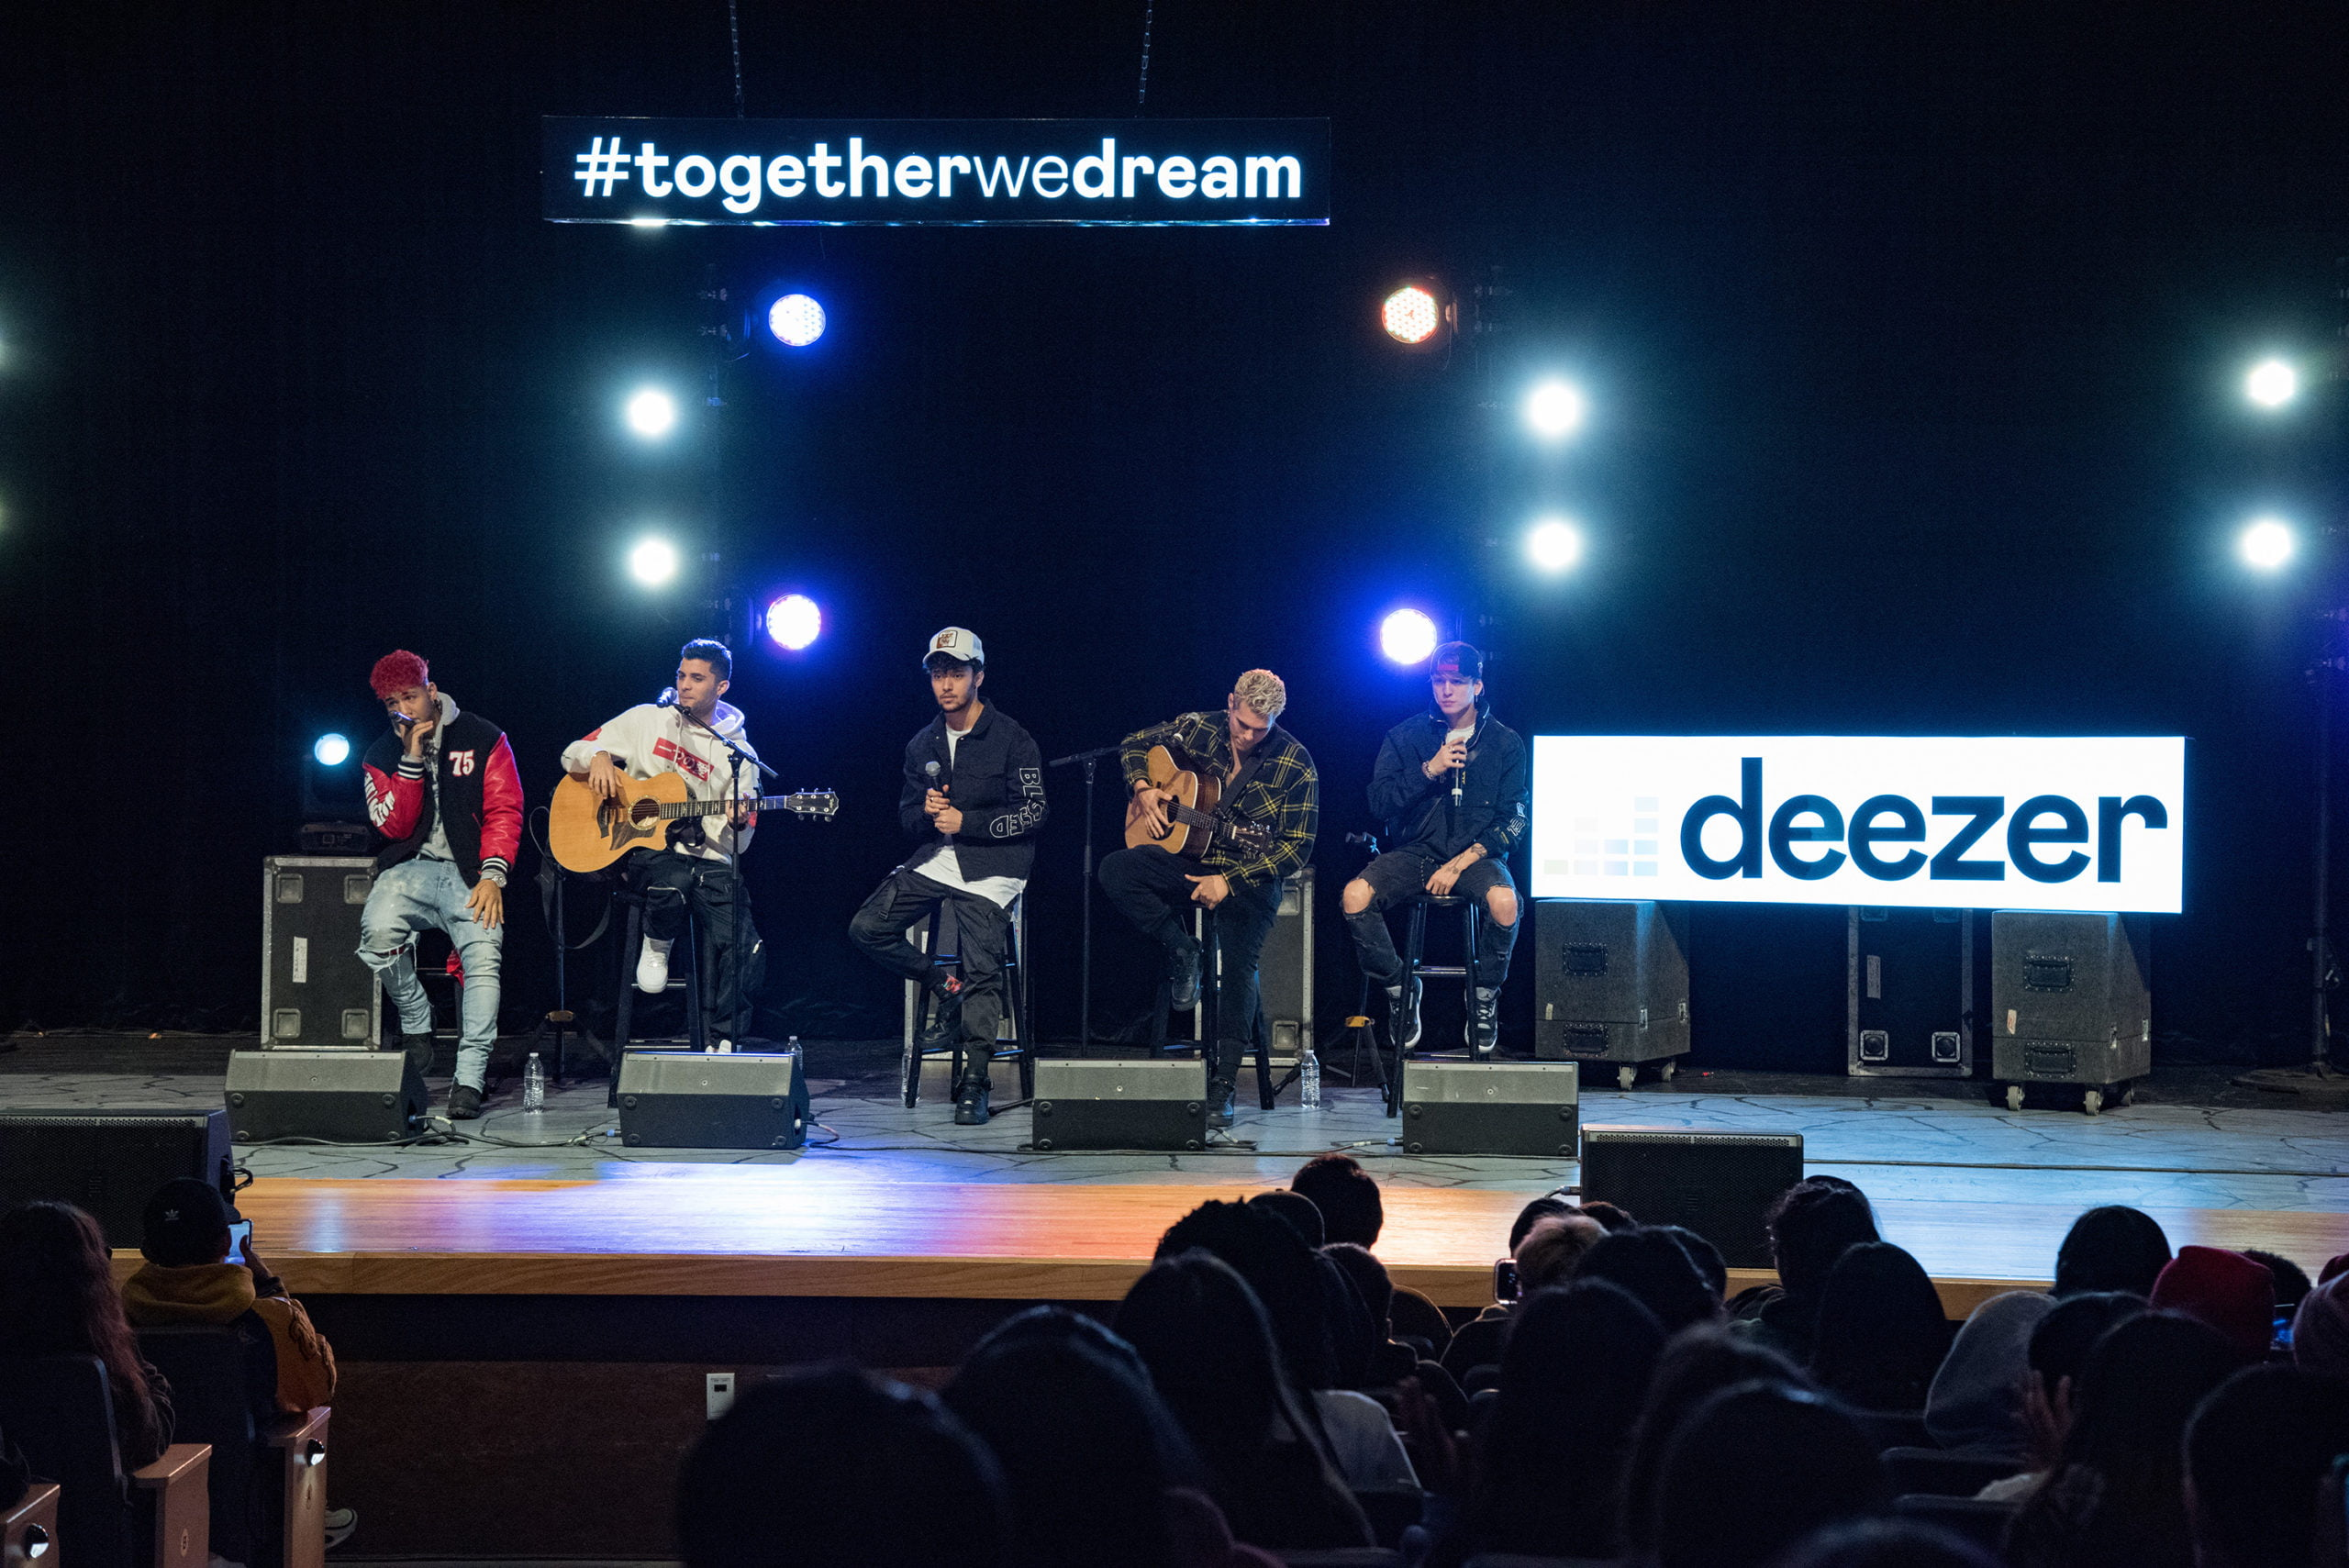 Deezer Surprises Houston High School With Live Performance by Top-Charting Latin Band CNCO